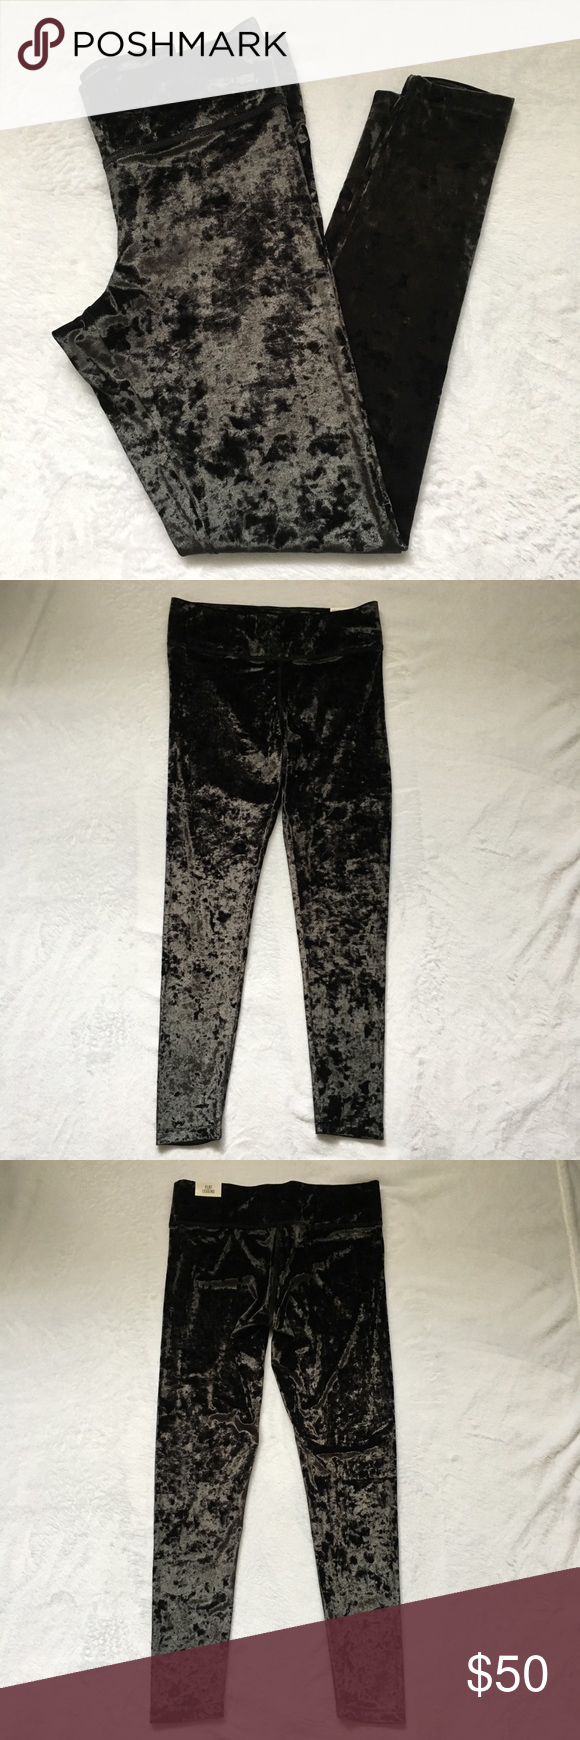 2be16b99864b1 NWT Pink VS Velvet Leggings NWT Pink Victoria's Secret Ultimate Flat Velvet  Leggings. Brand new. Tag is attached. - measurements approx.